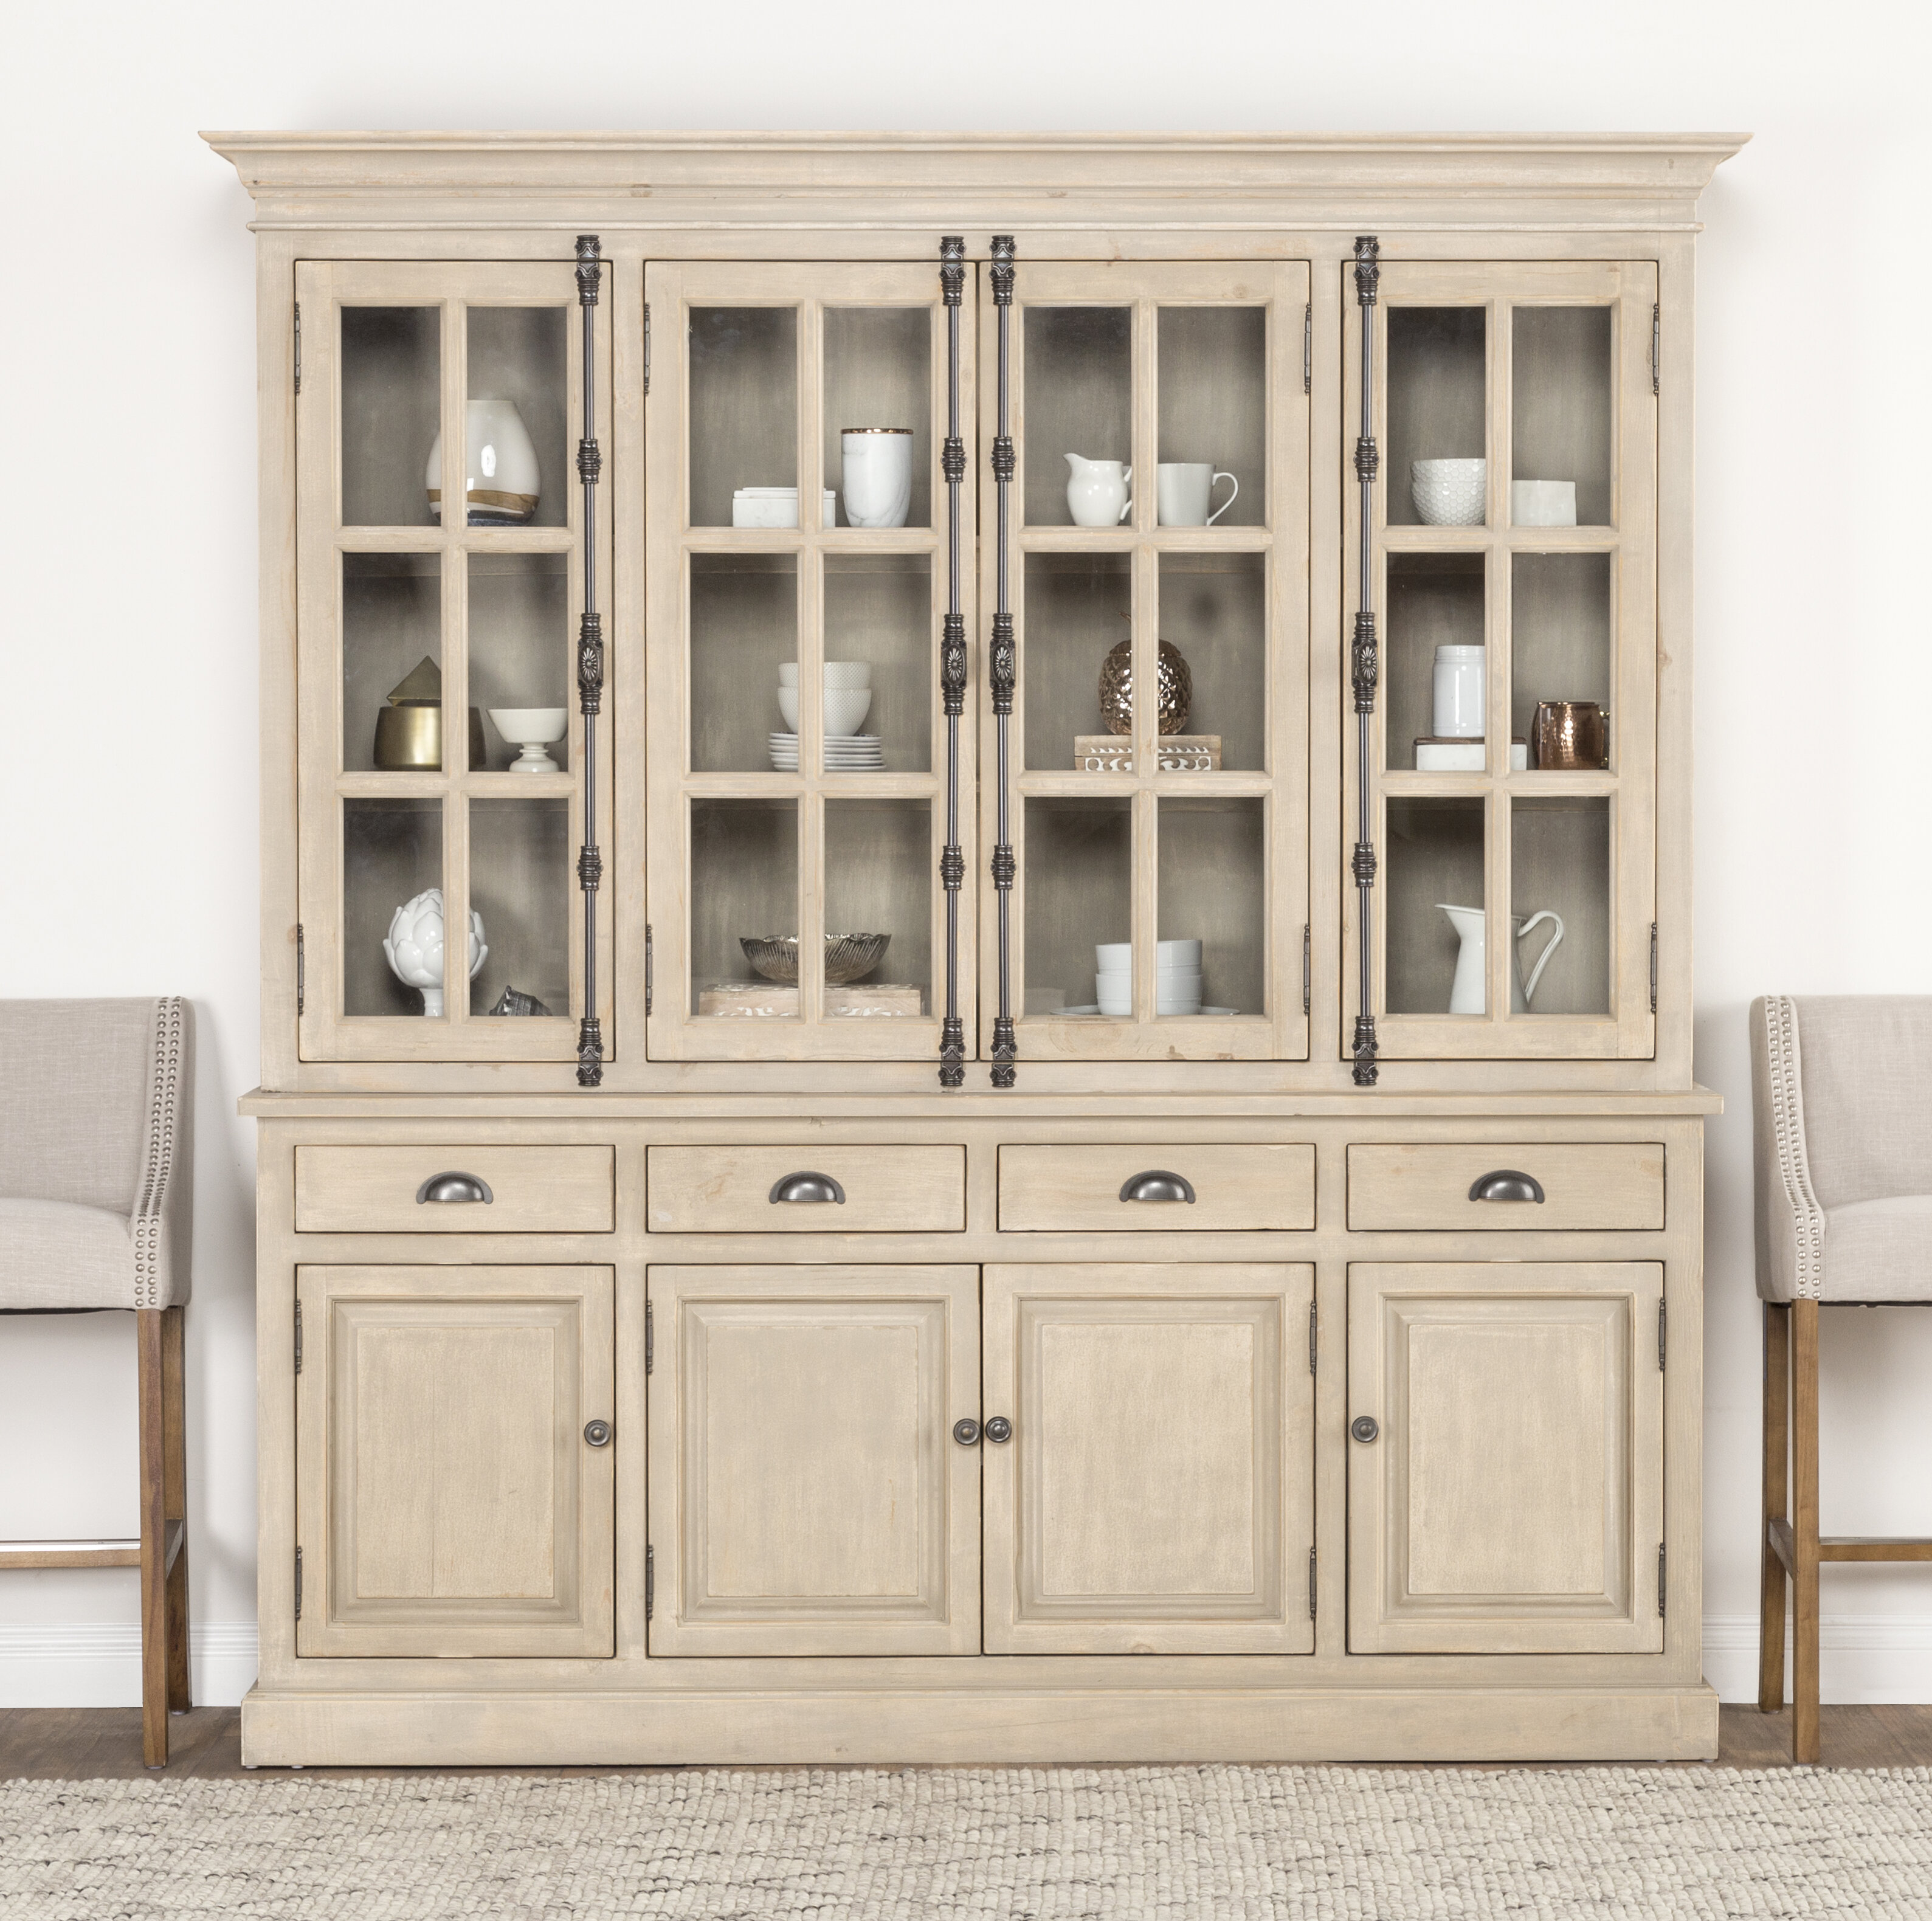 china pdx cabinet wayfair one reviews allium furniture febe way hutch